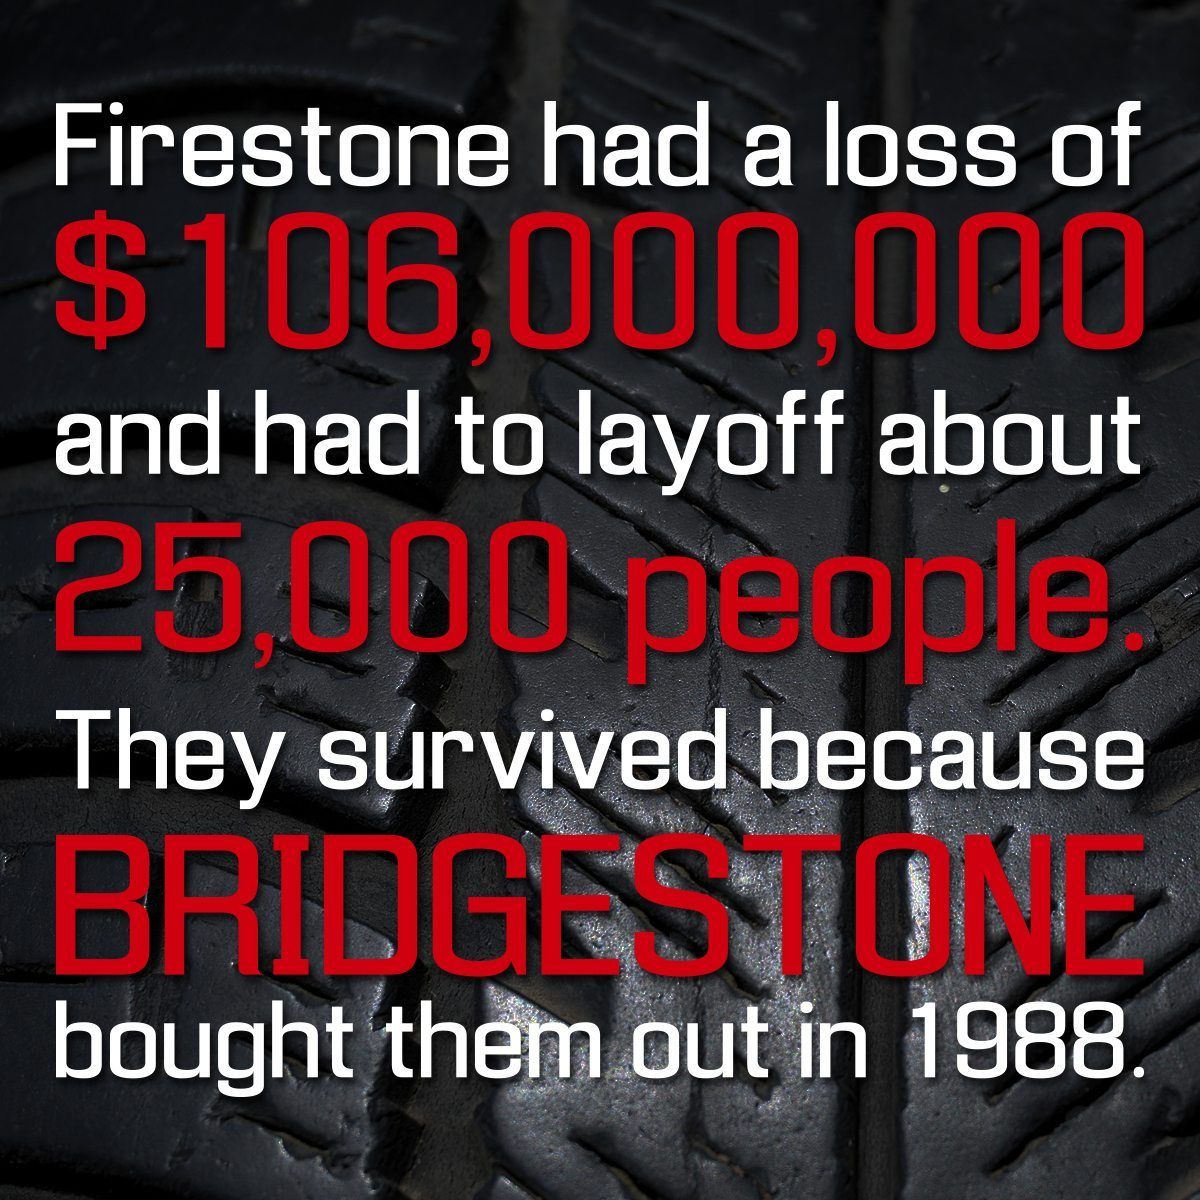 Firestone had a loss of 106,000,000...